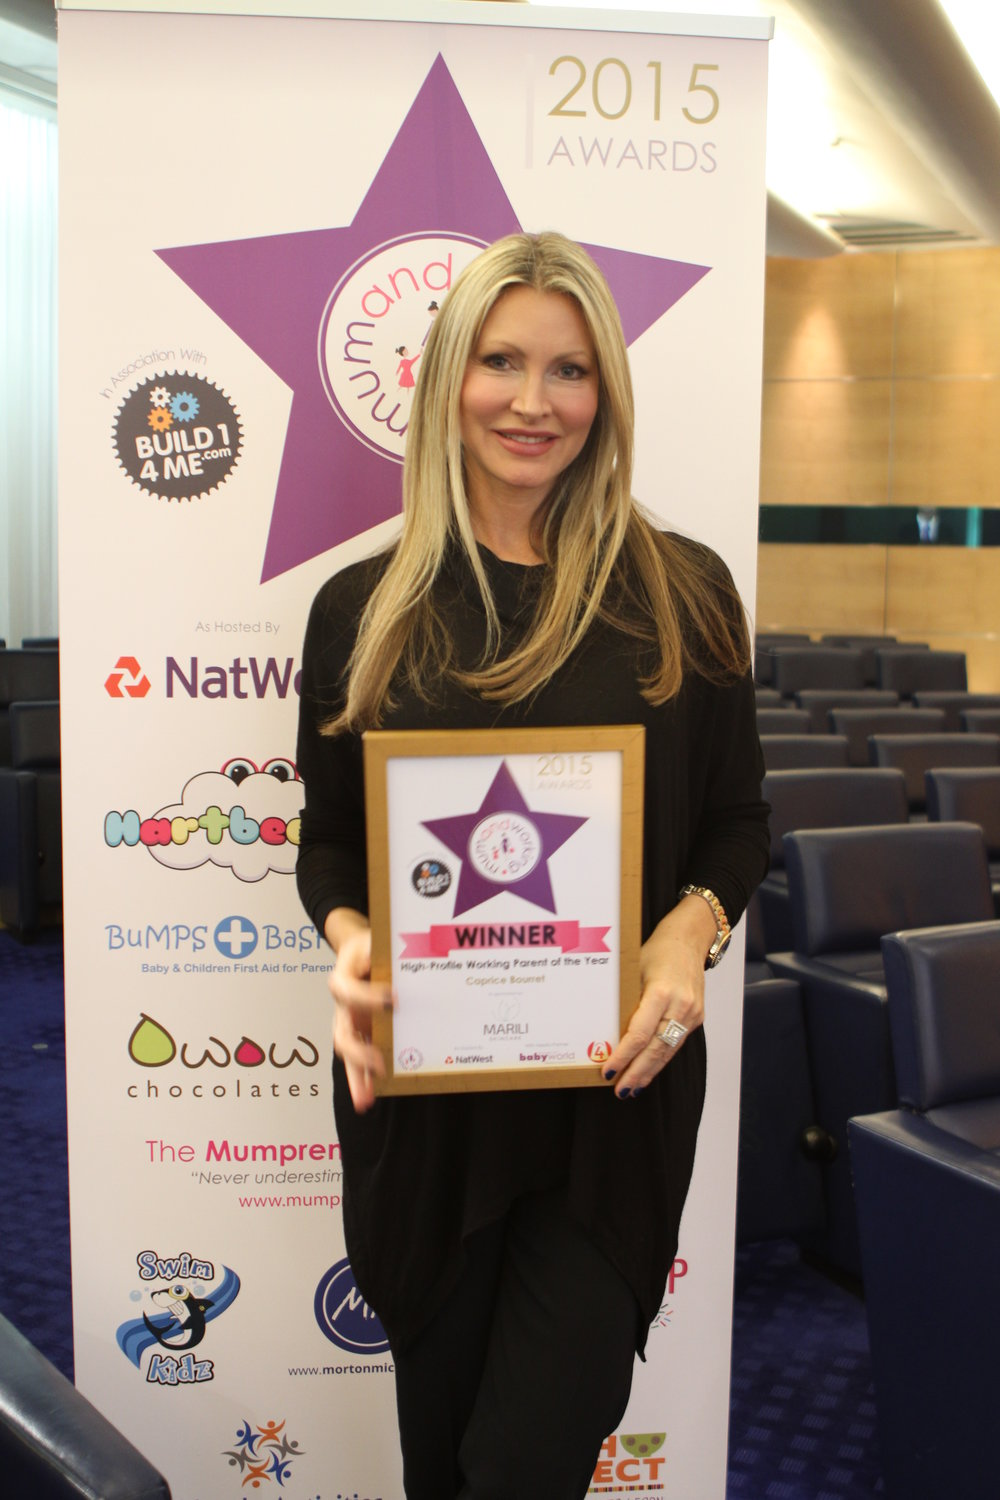 NATIONAL MUM AND WORKING AWARDS - Winner – High Profile Parent of the year 2015Caprice was the winner of this prestige award...in the category of high profile parent of the year.2015